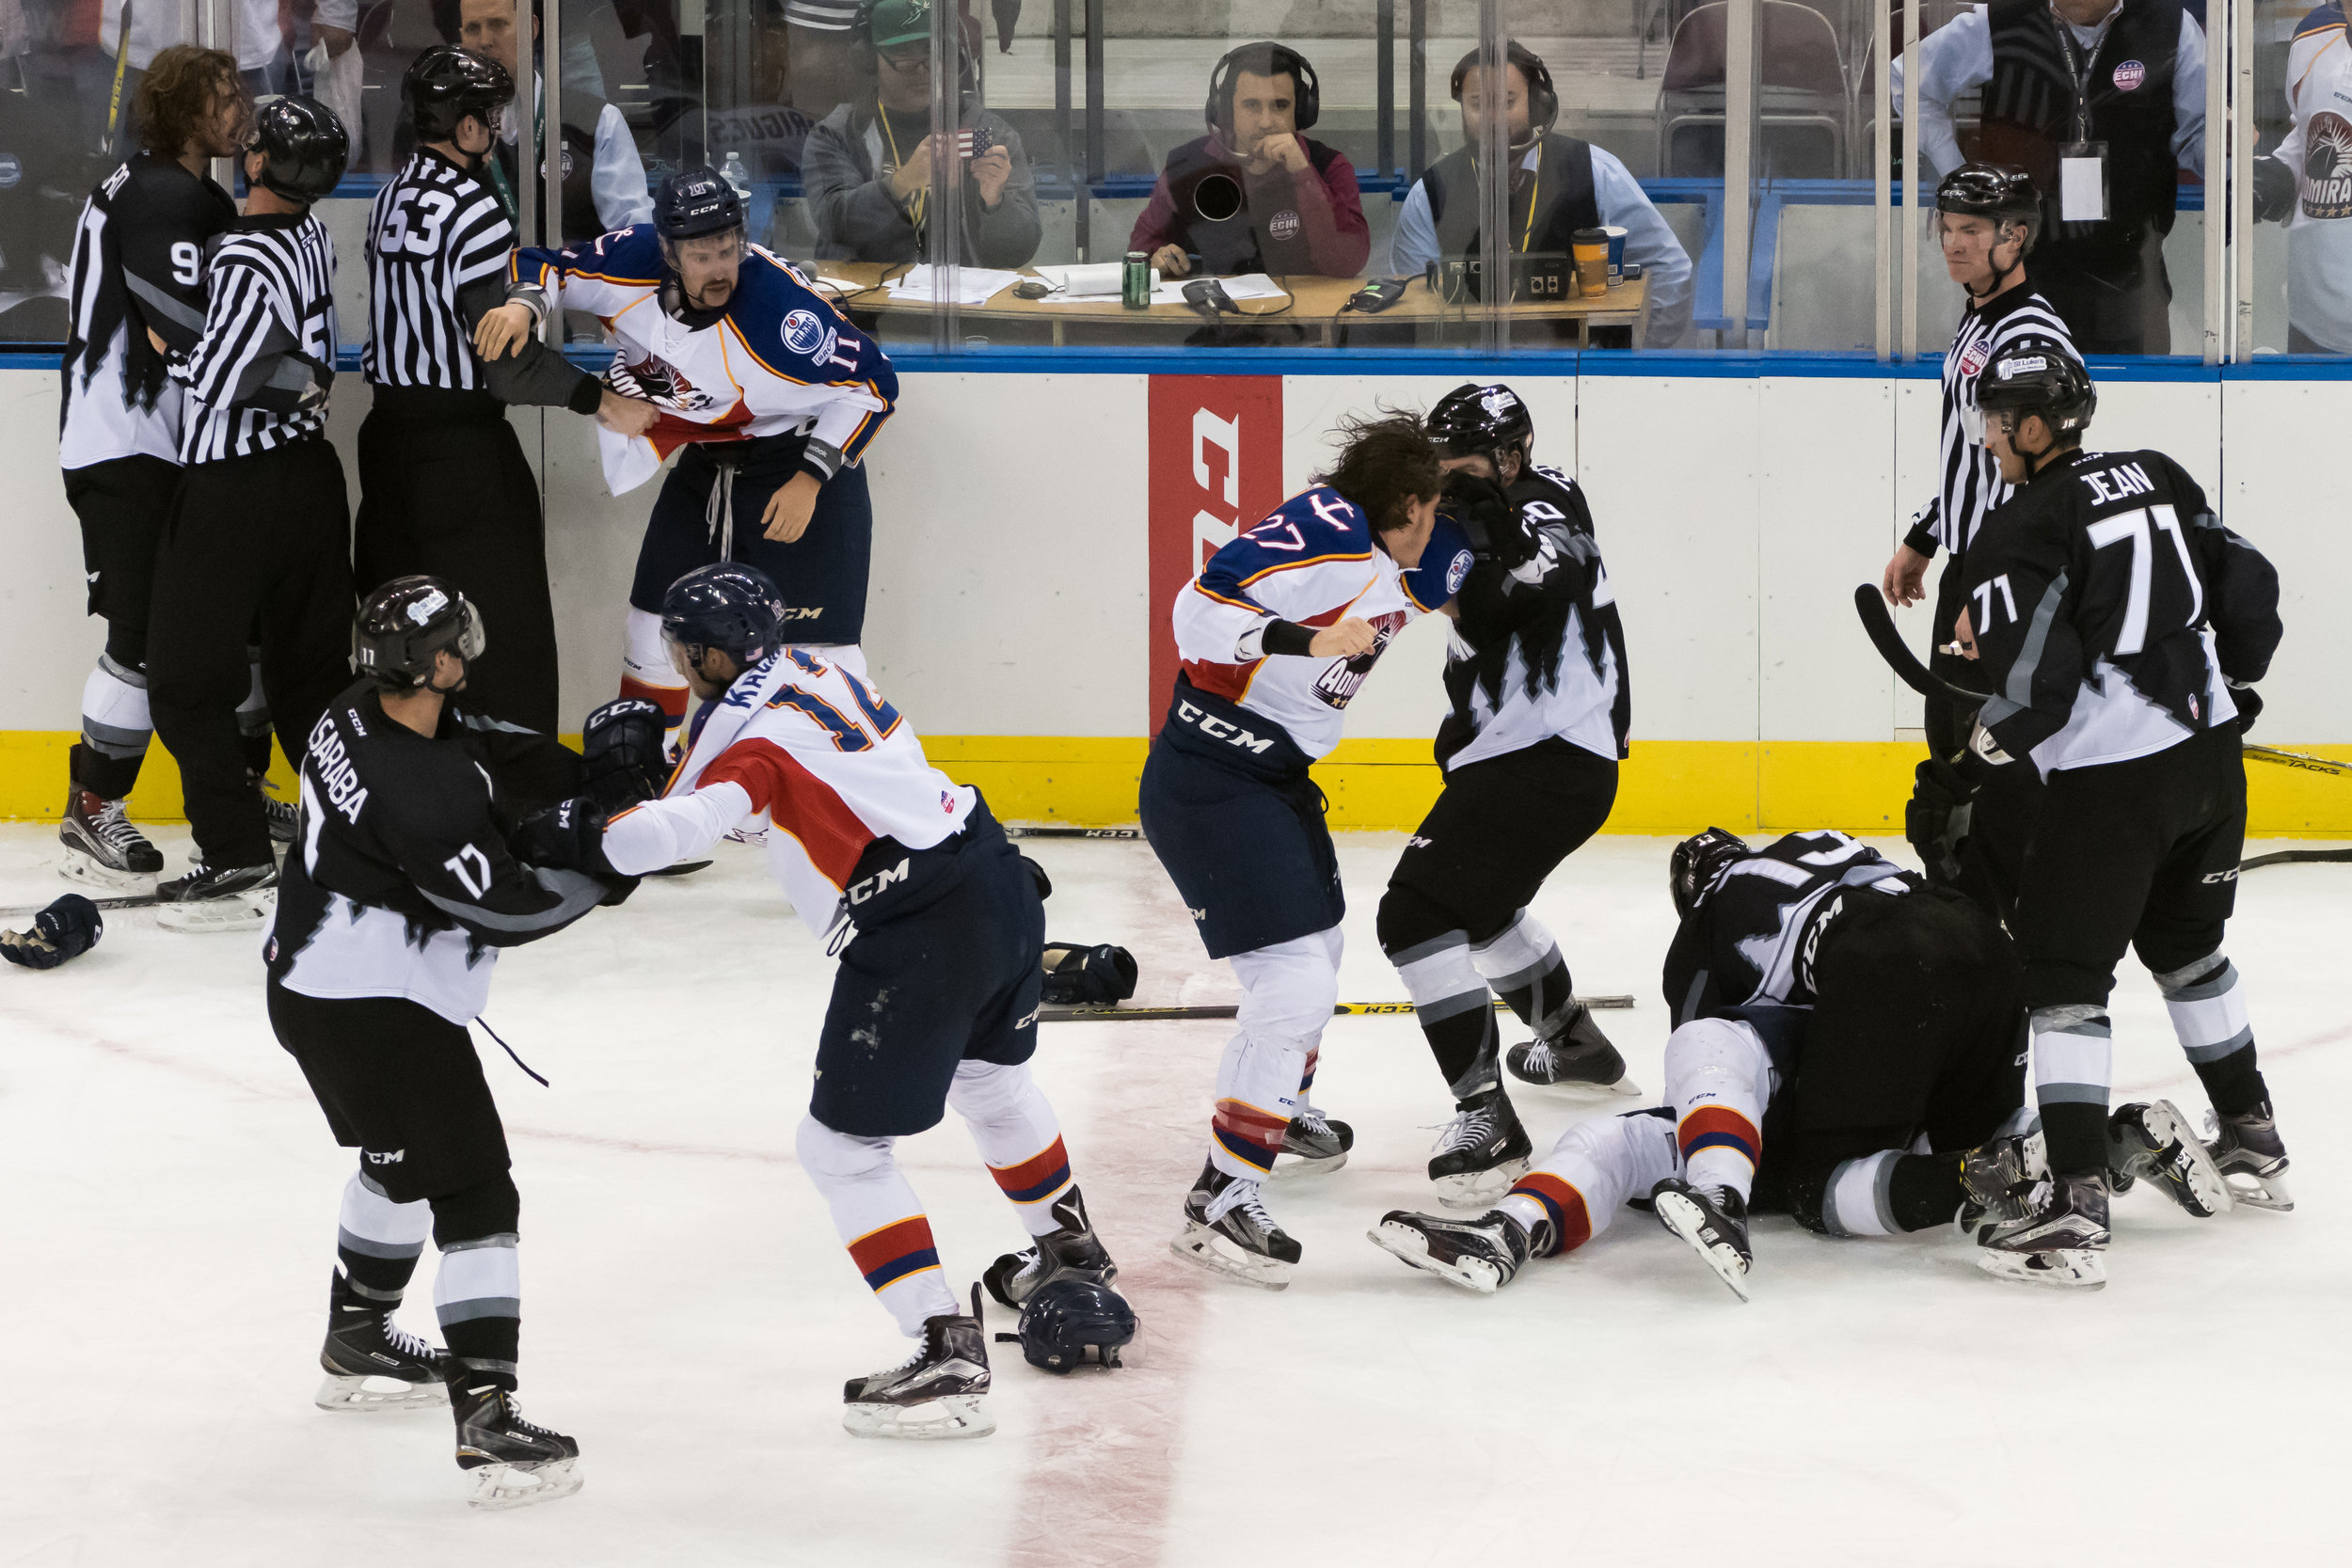 Norfolk Admirals and Idaho Steelheads players fight during Wednesday night's game at the Scope Arena in Norfolk, Virginia. Idaho defeated Norfolk 6-4.